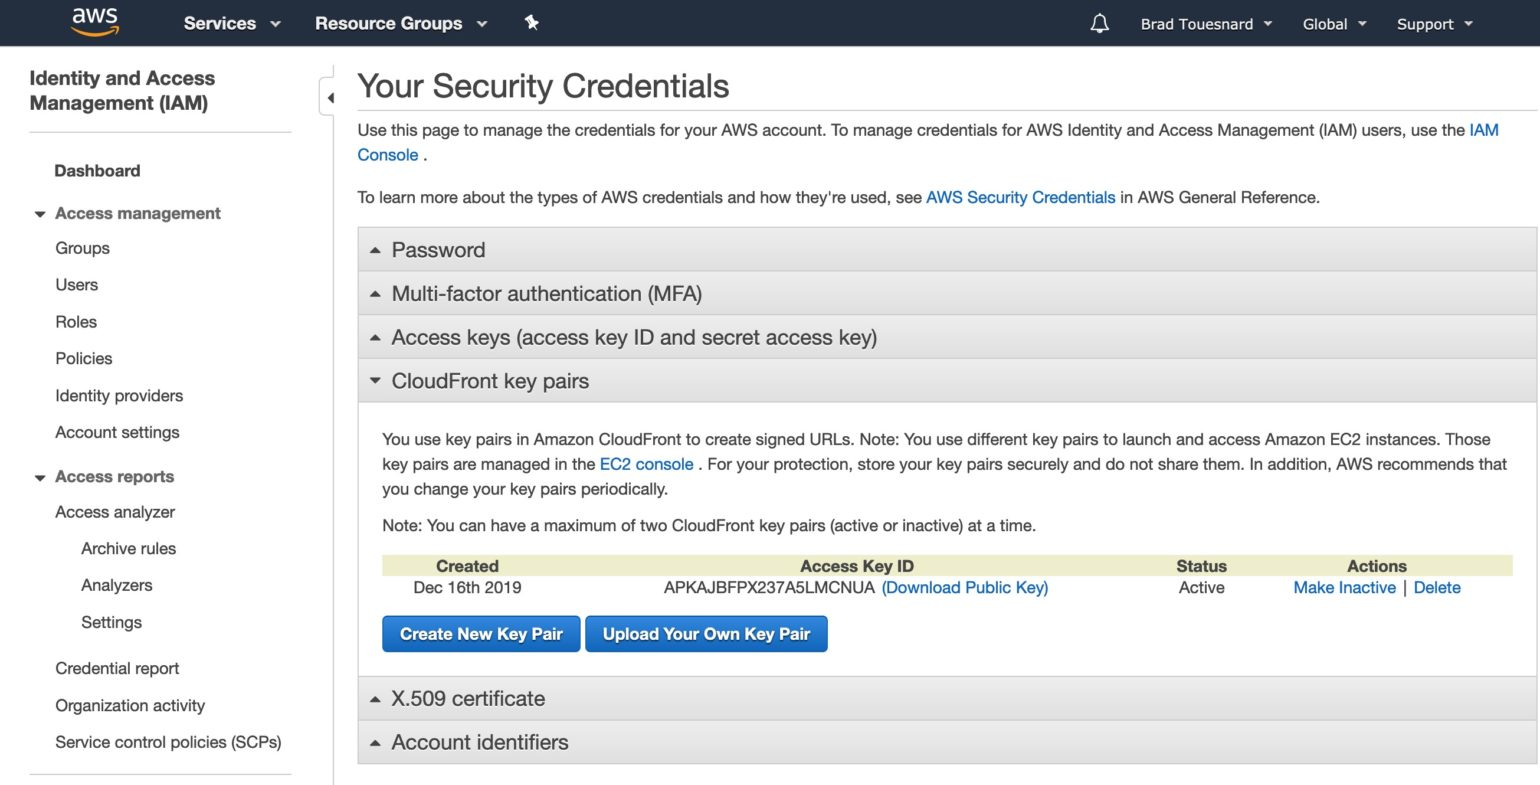 OME Signed CloudFront Setup - Your Security Credentials page showing existing CloudFront key pairs